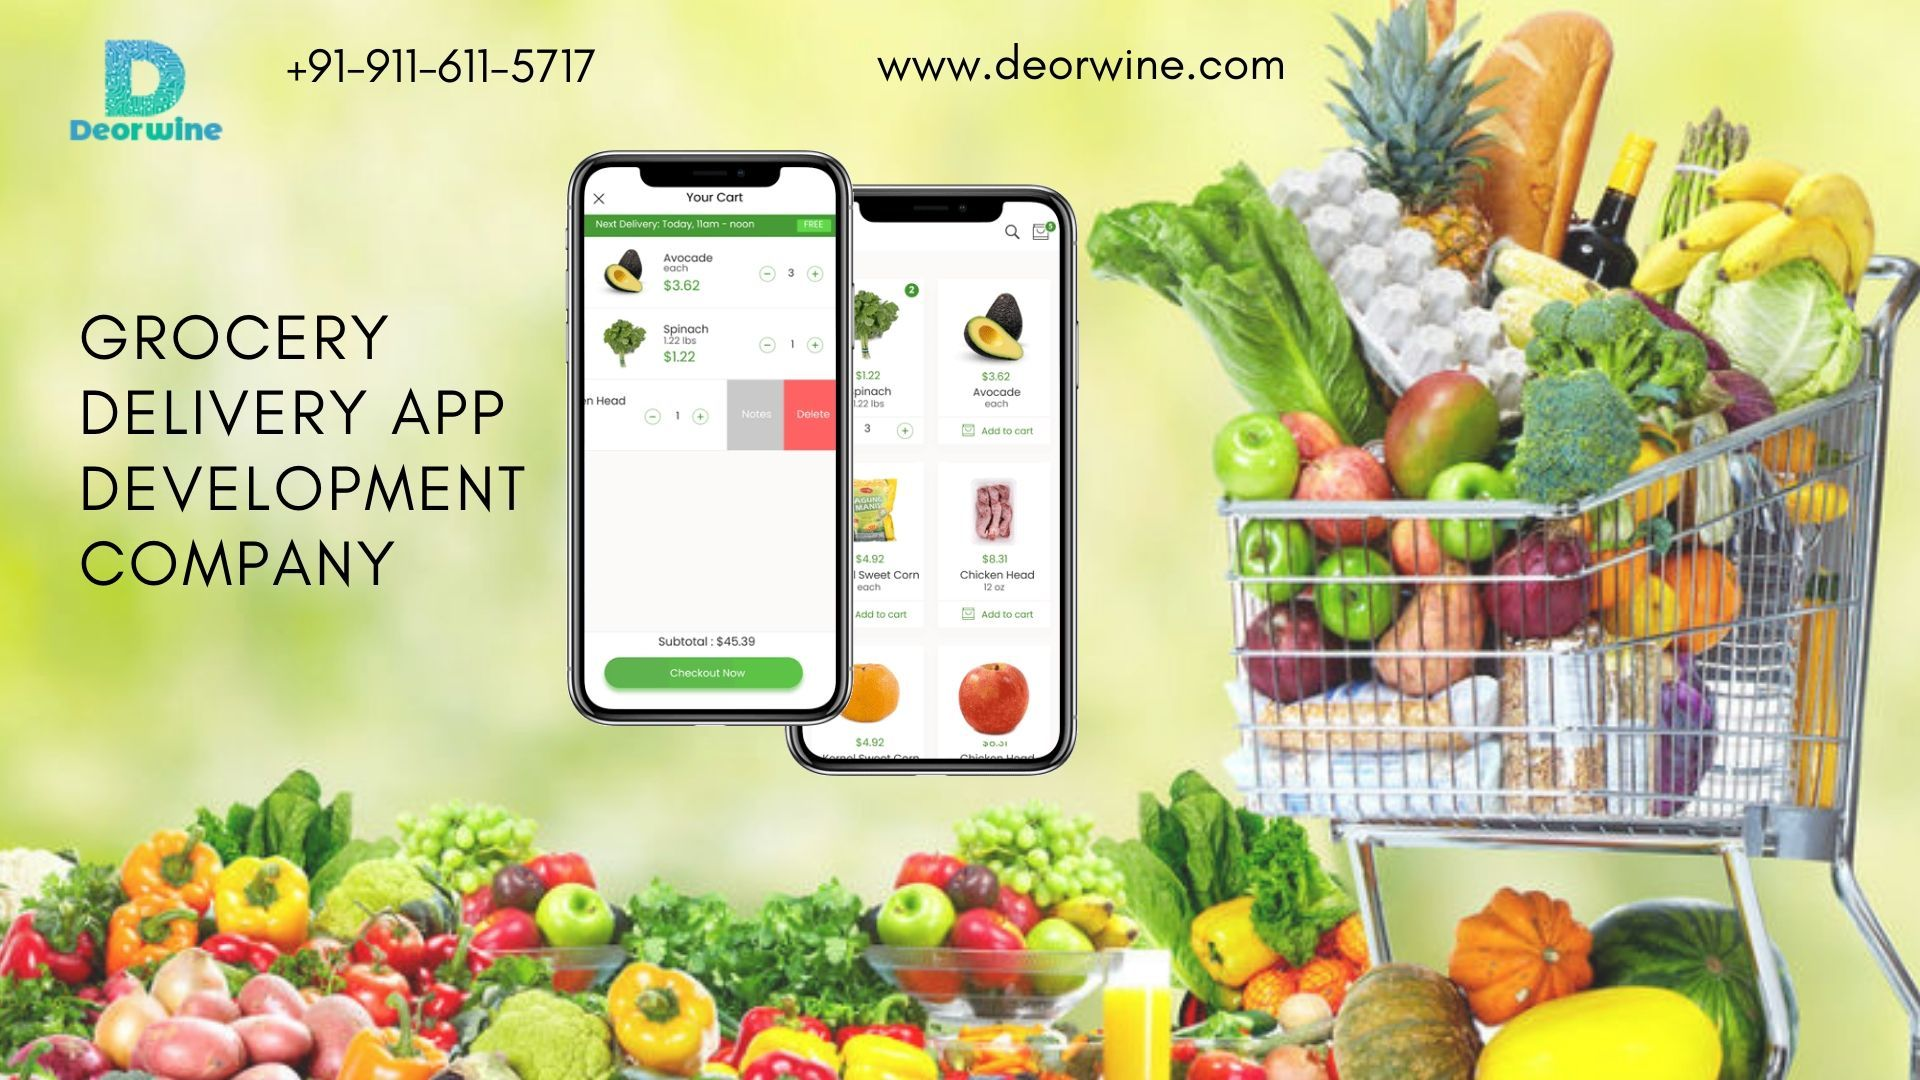 Deorwine is the best Grocery delivery app development